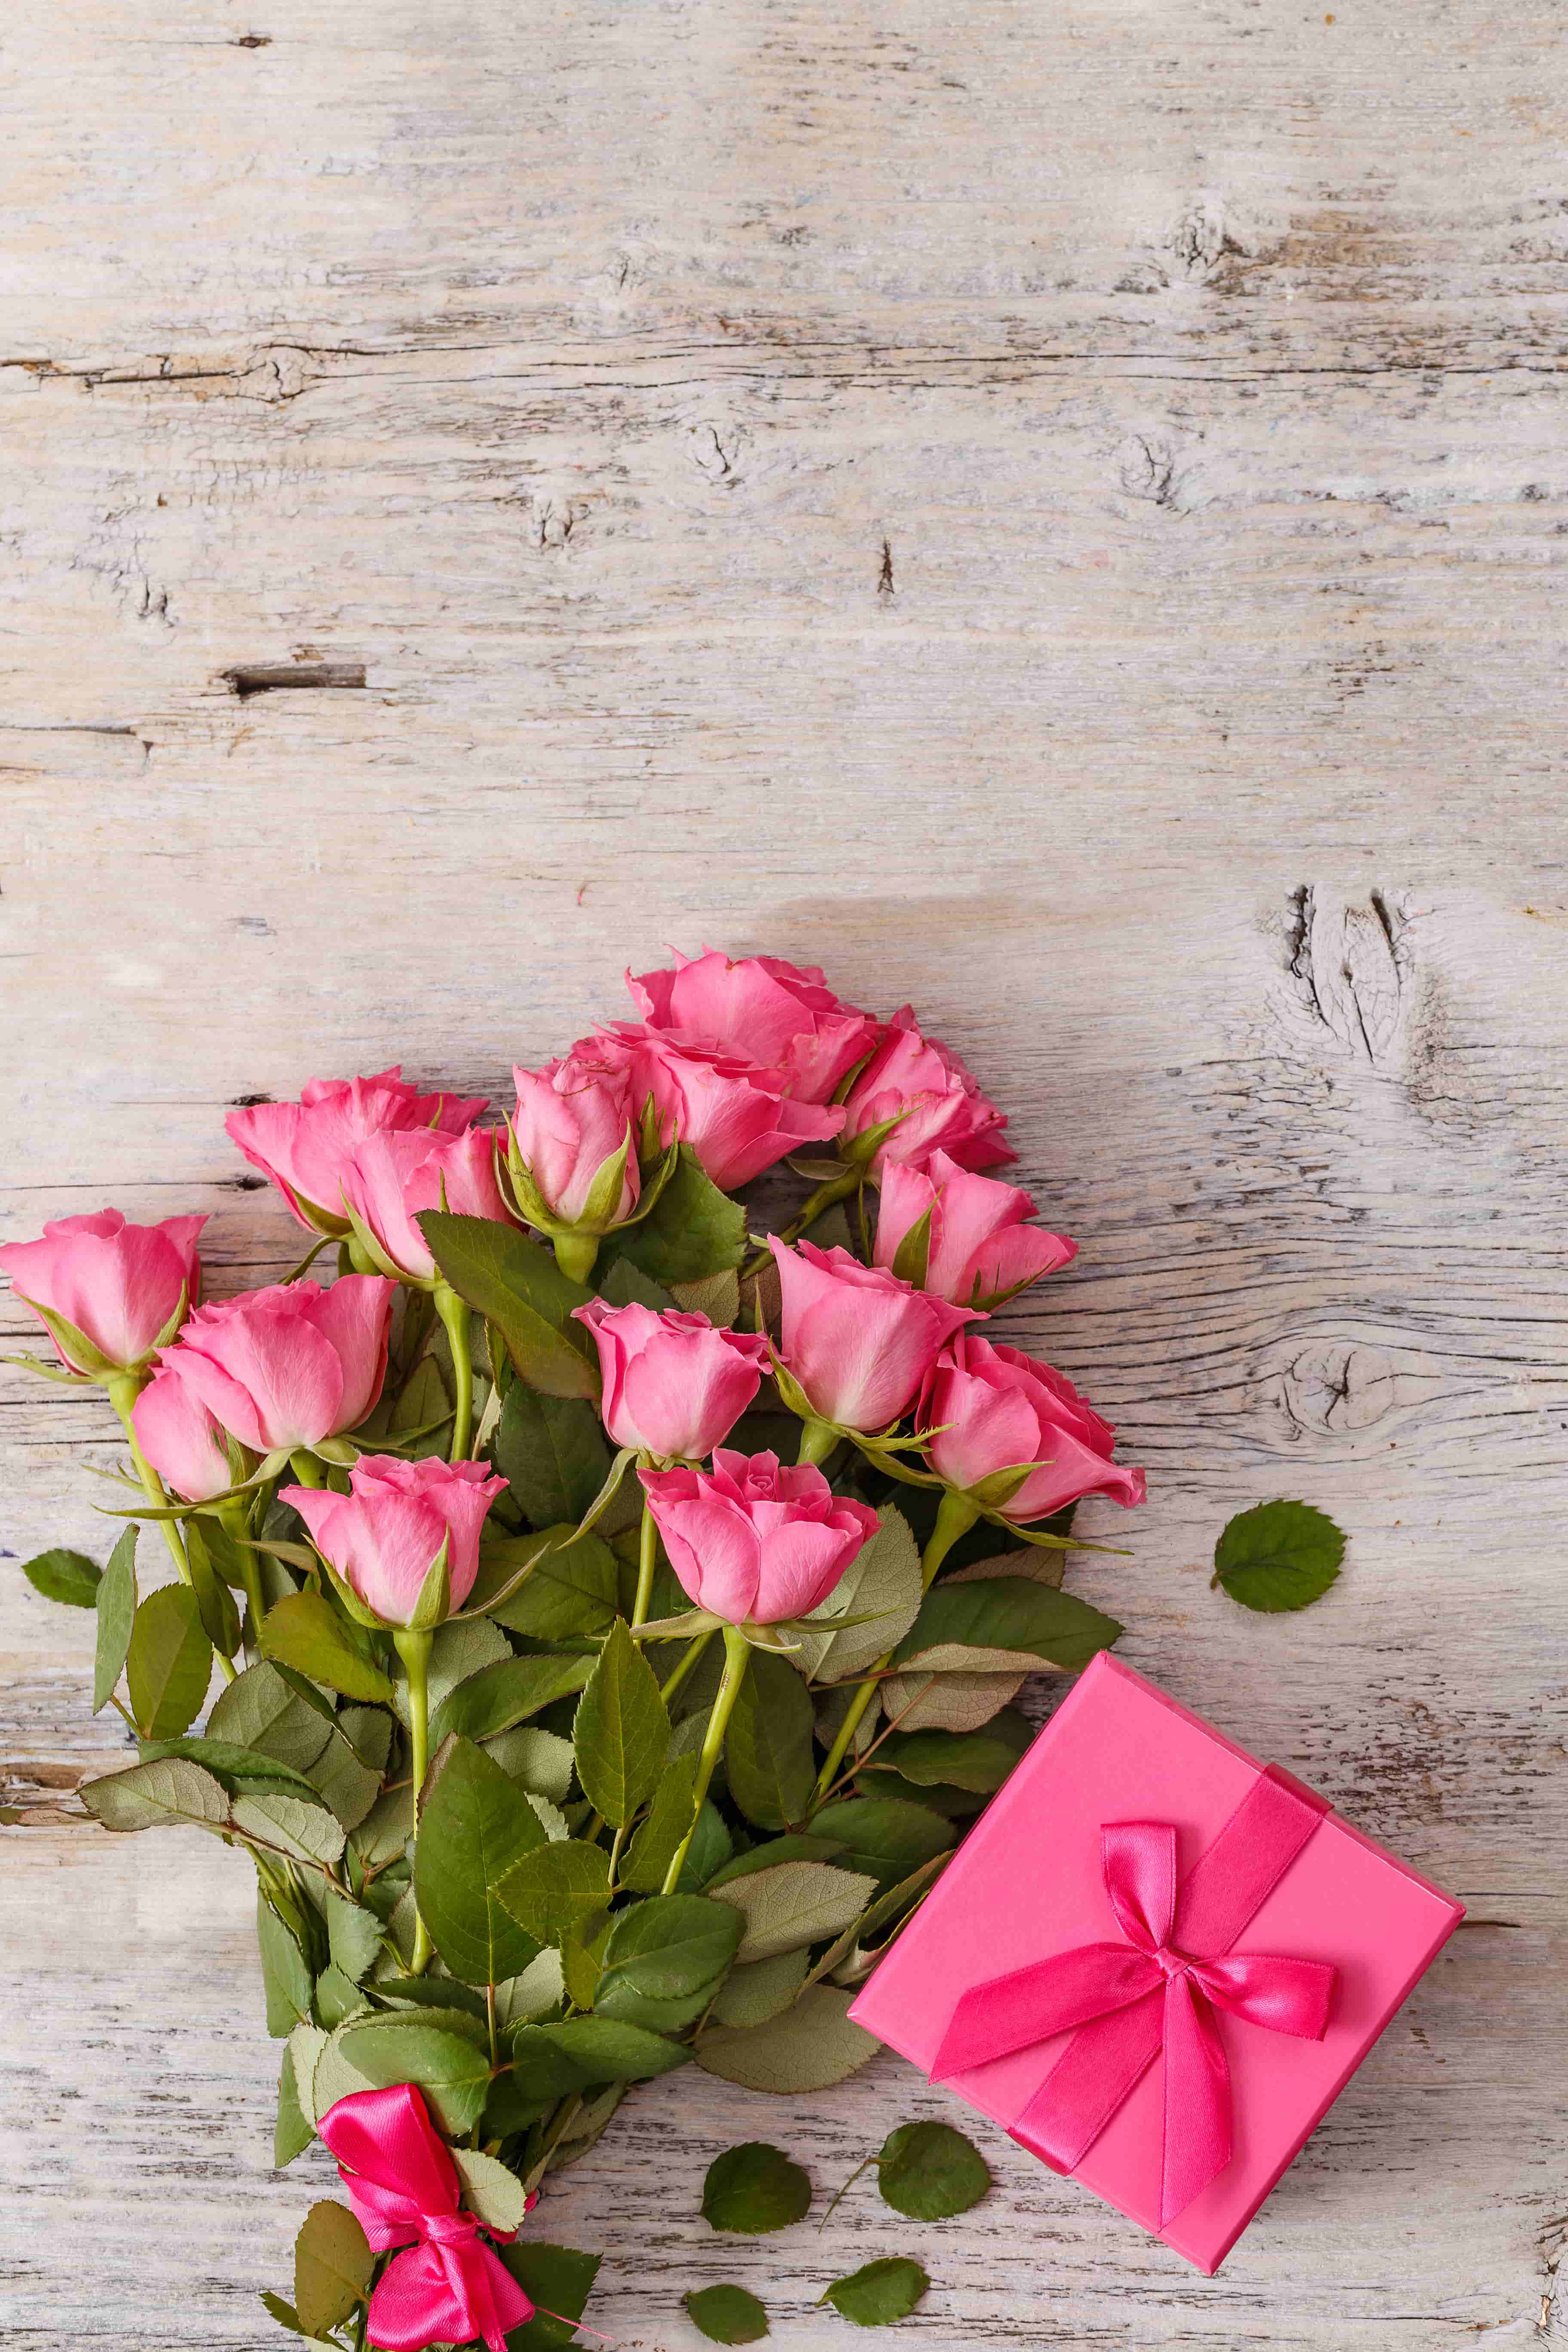 bouquet of pink rose images